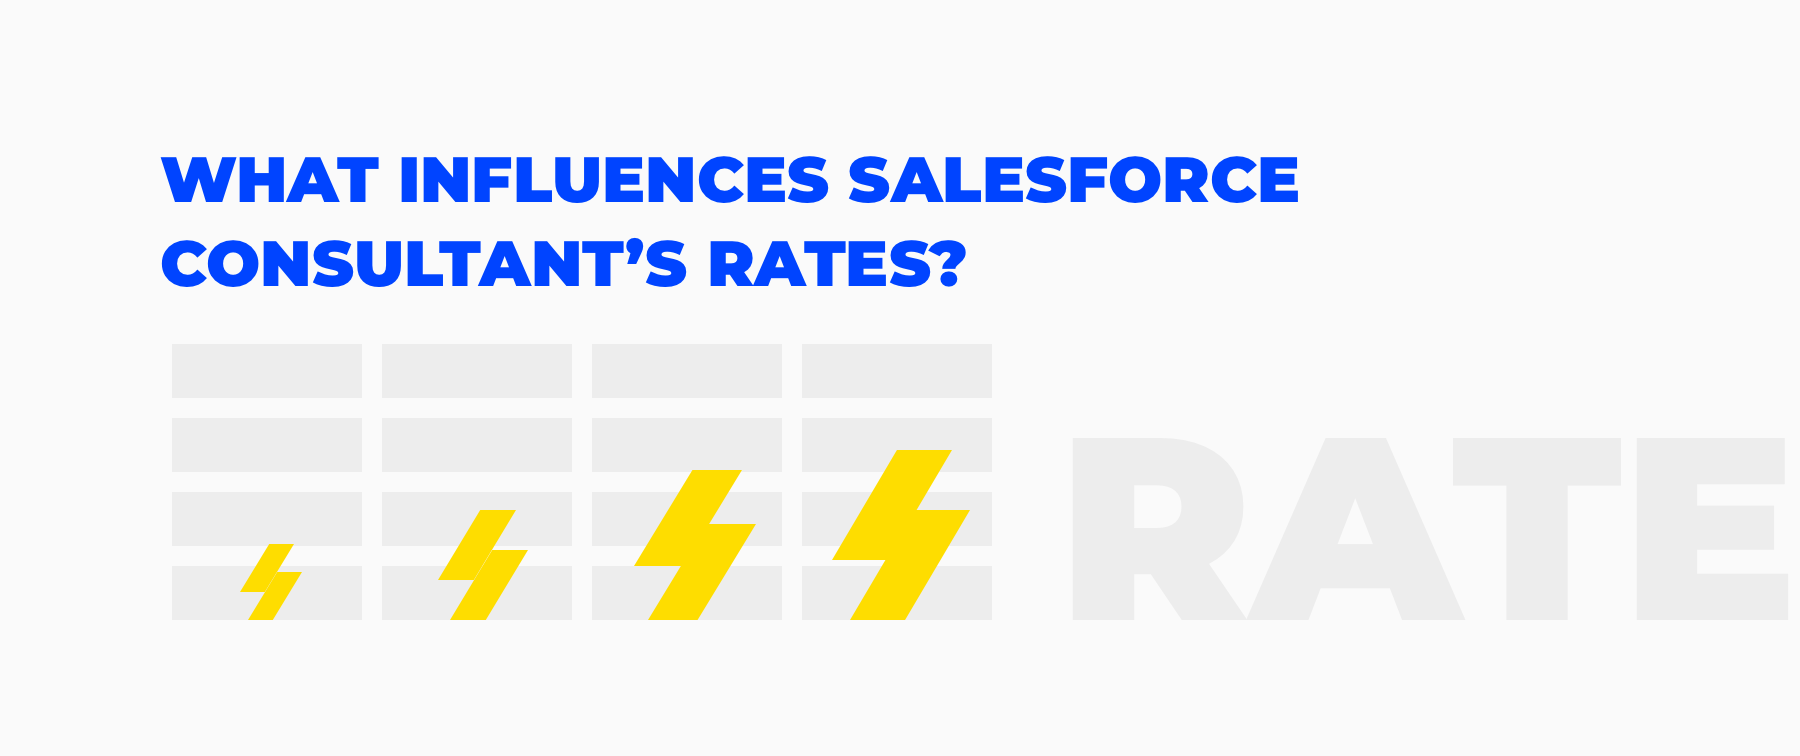 salesforce consulting rates factors